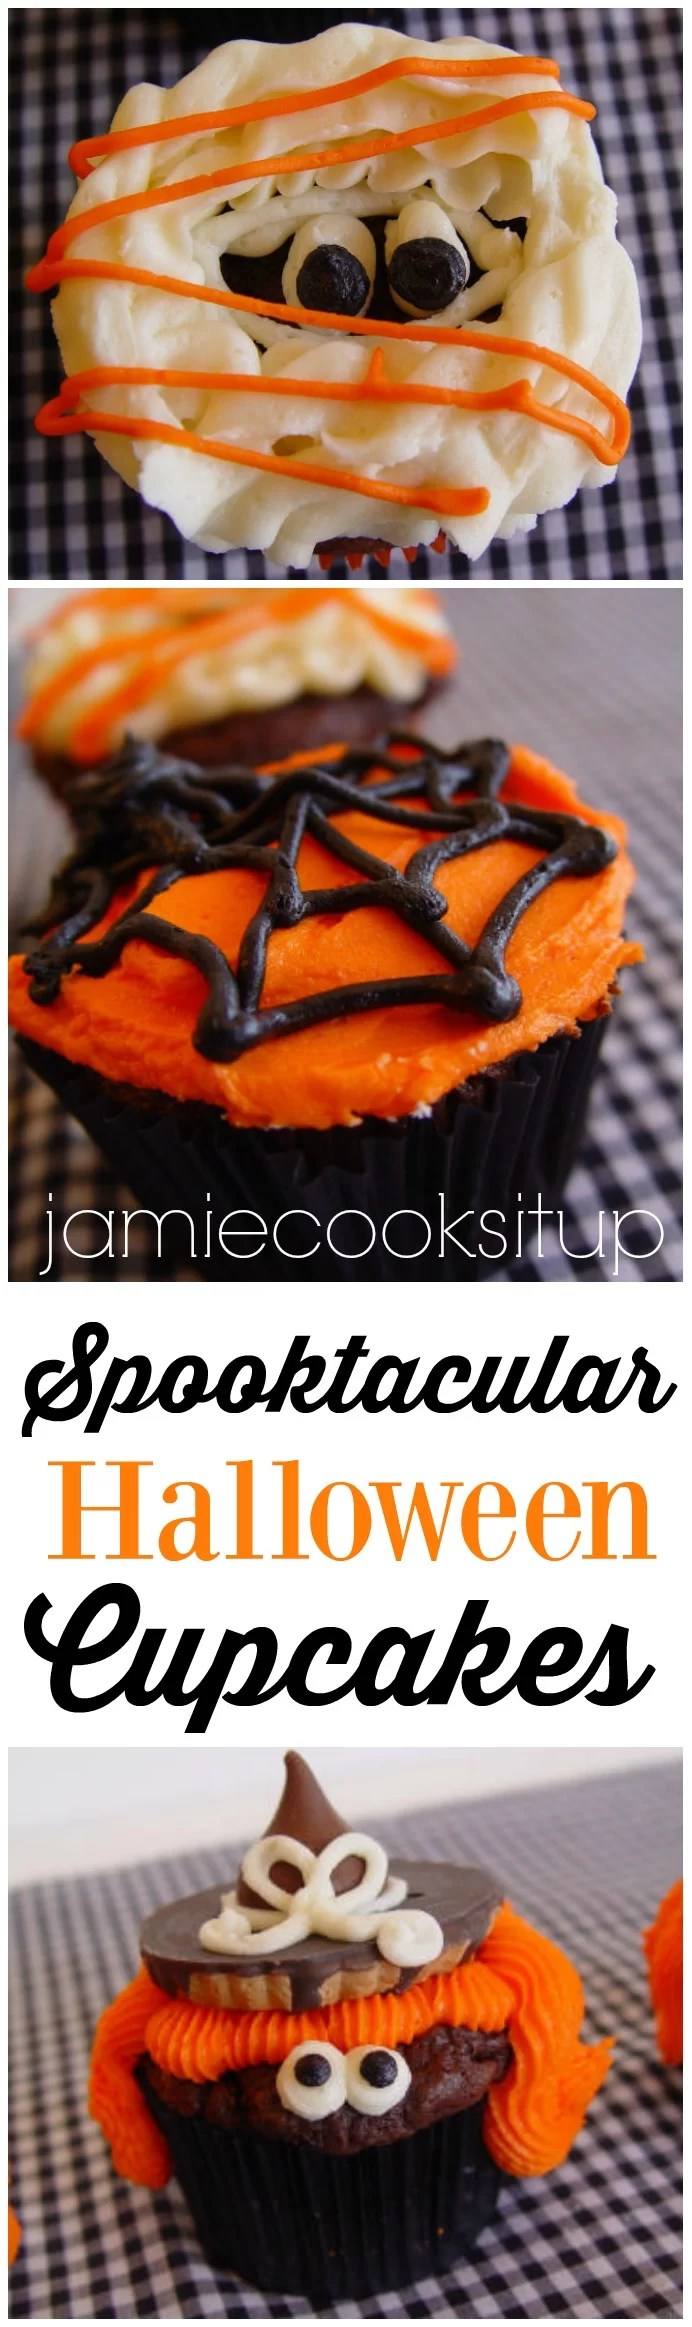 spooktacular-halloween-cupcakes-from-jamie-cooks-it-up